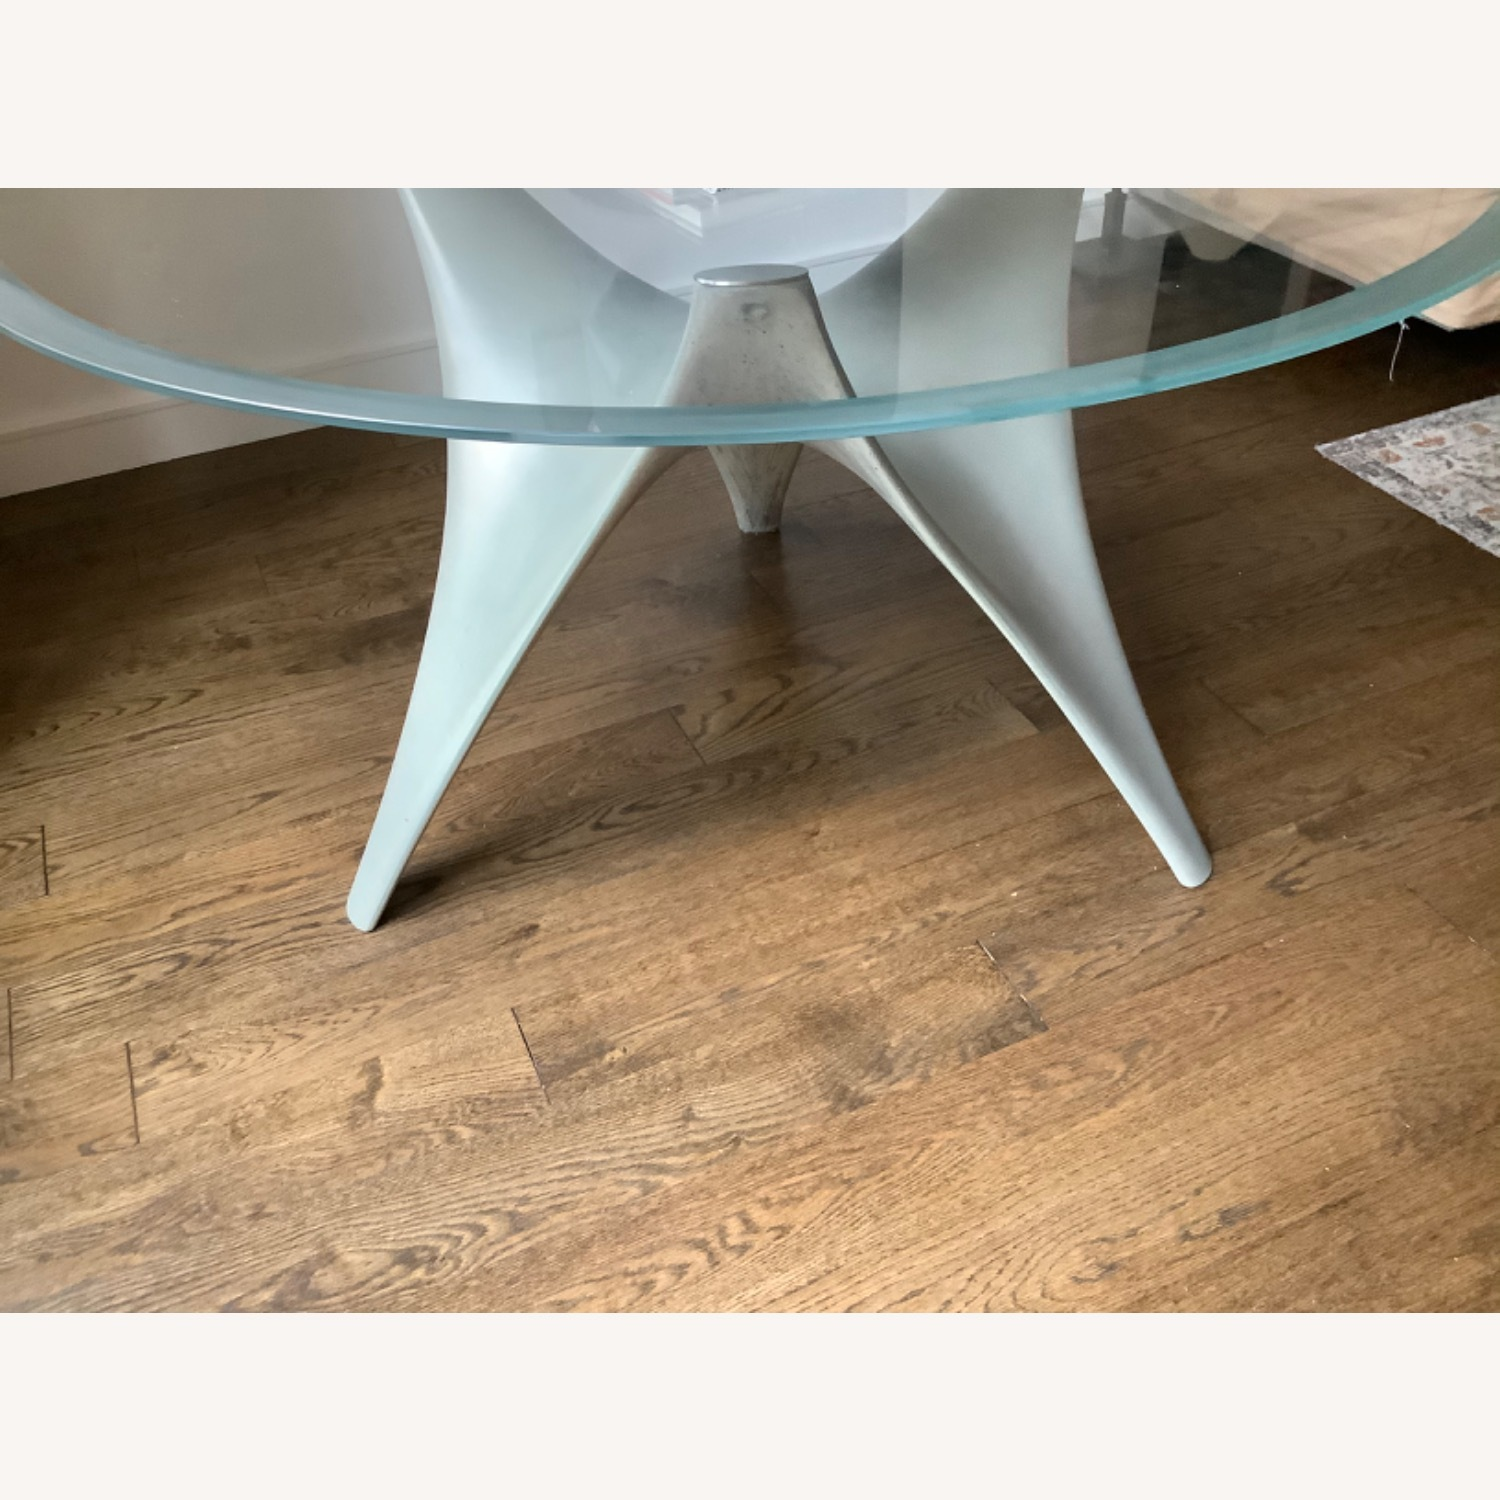 Molteni Arc Dining Table - Grey - image-3